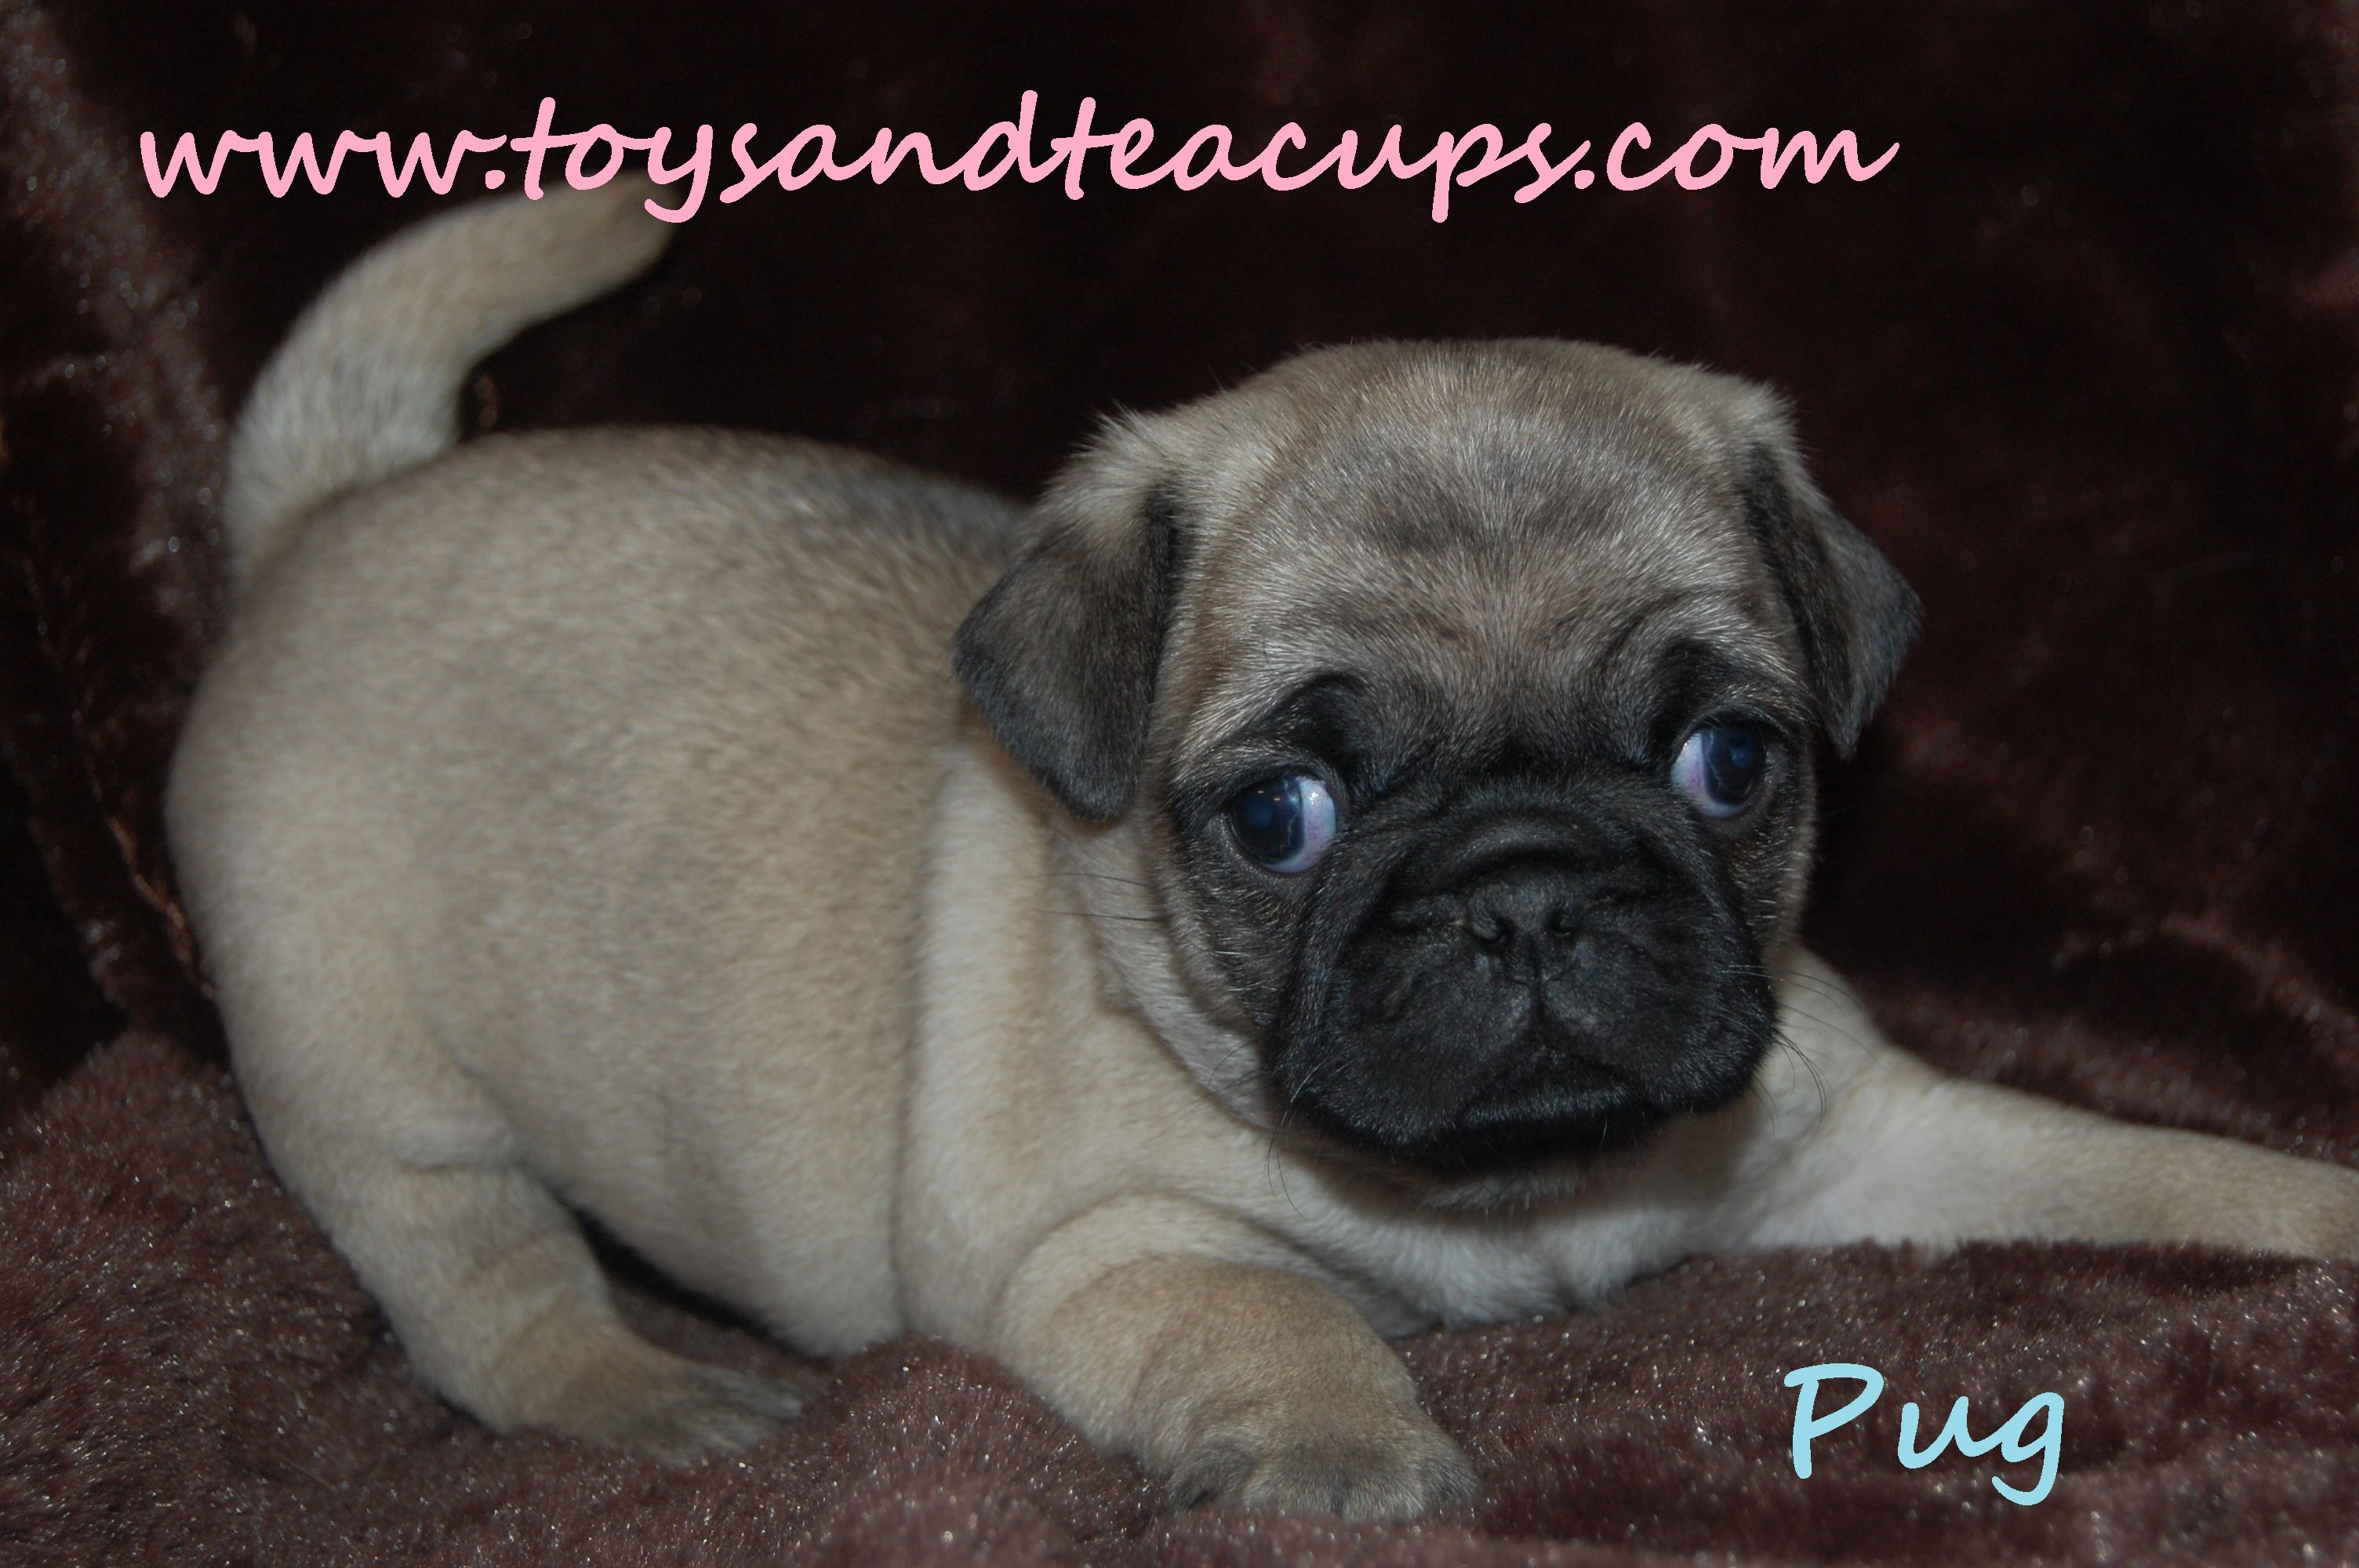 Pug Puppies For Sale 450 00 Www Toysandteacups Com Call